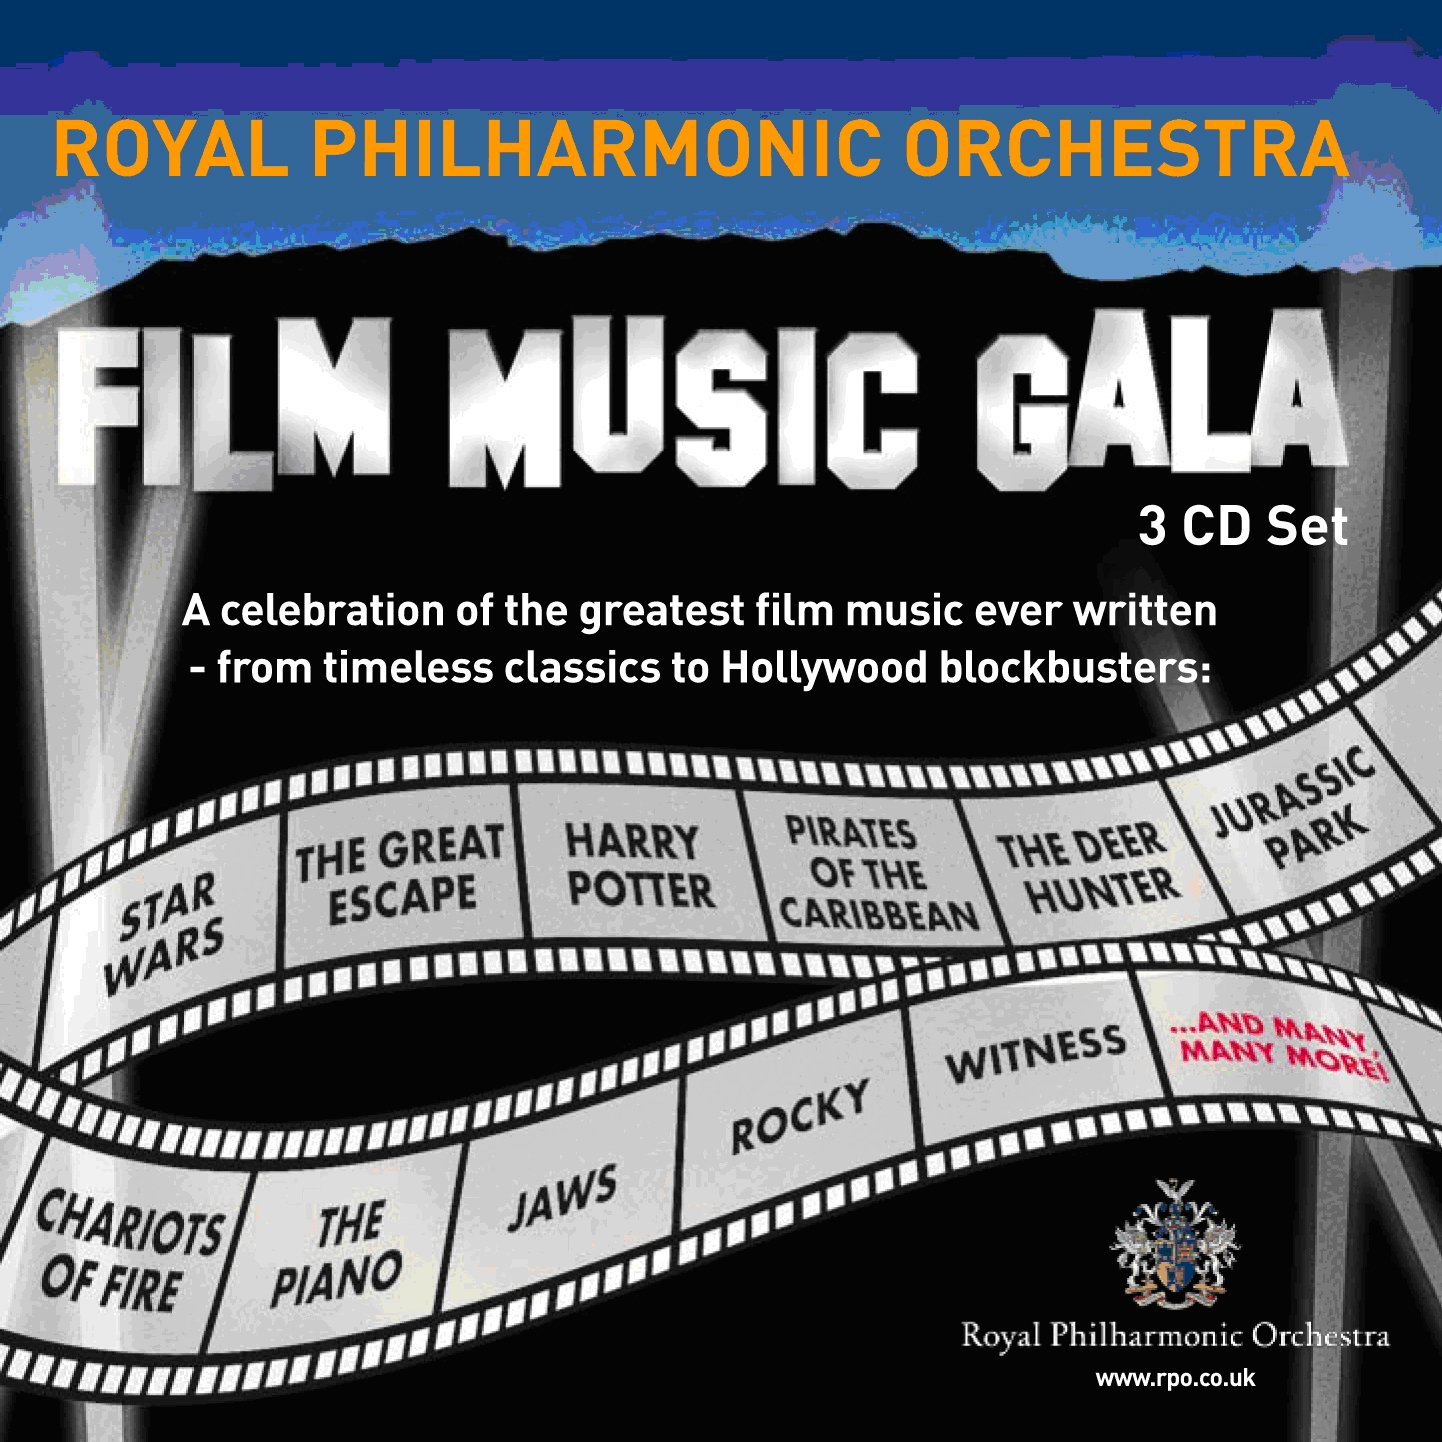 Film Music Gala: Celebration of Film Music by Royal Philharmonic Orchestra